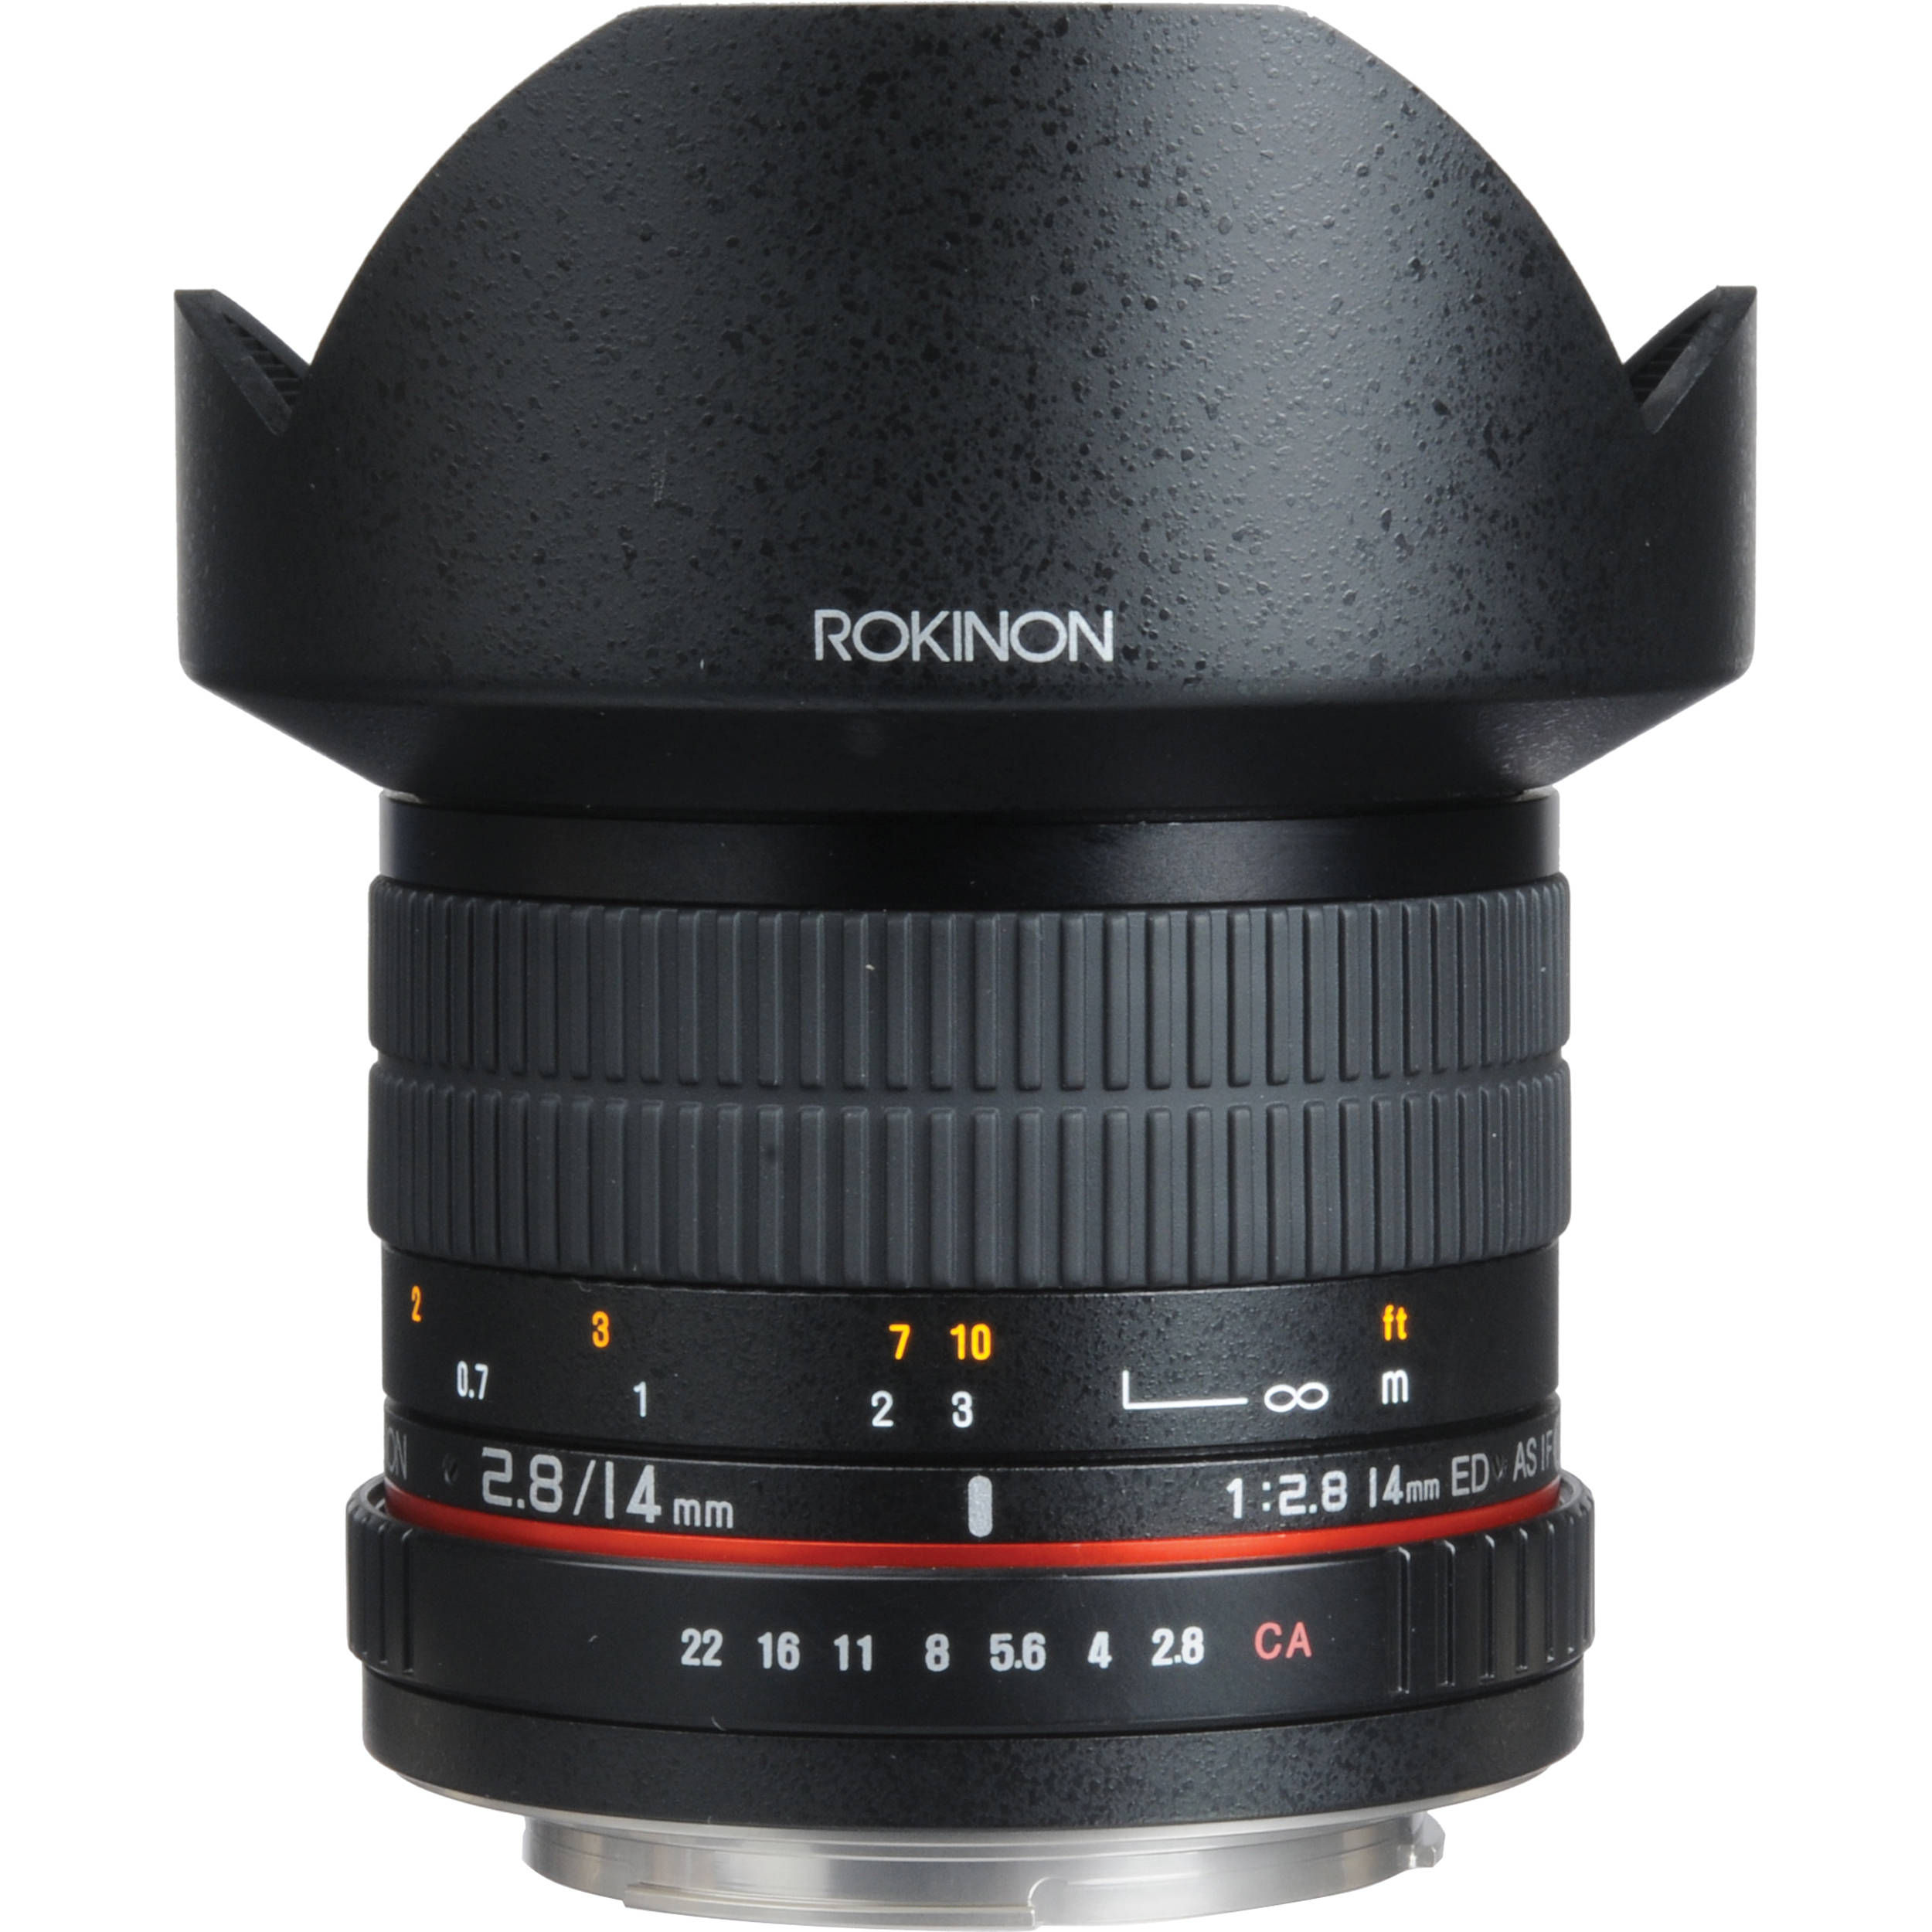 Rokinon 14mm f/2.8 IF ED UMC Lens For Canon EF FE14M-C B&H Photo